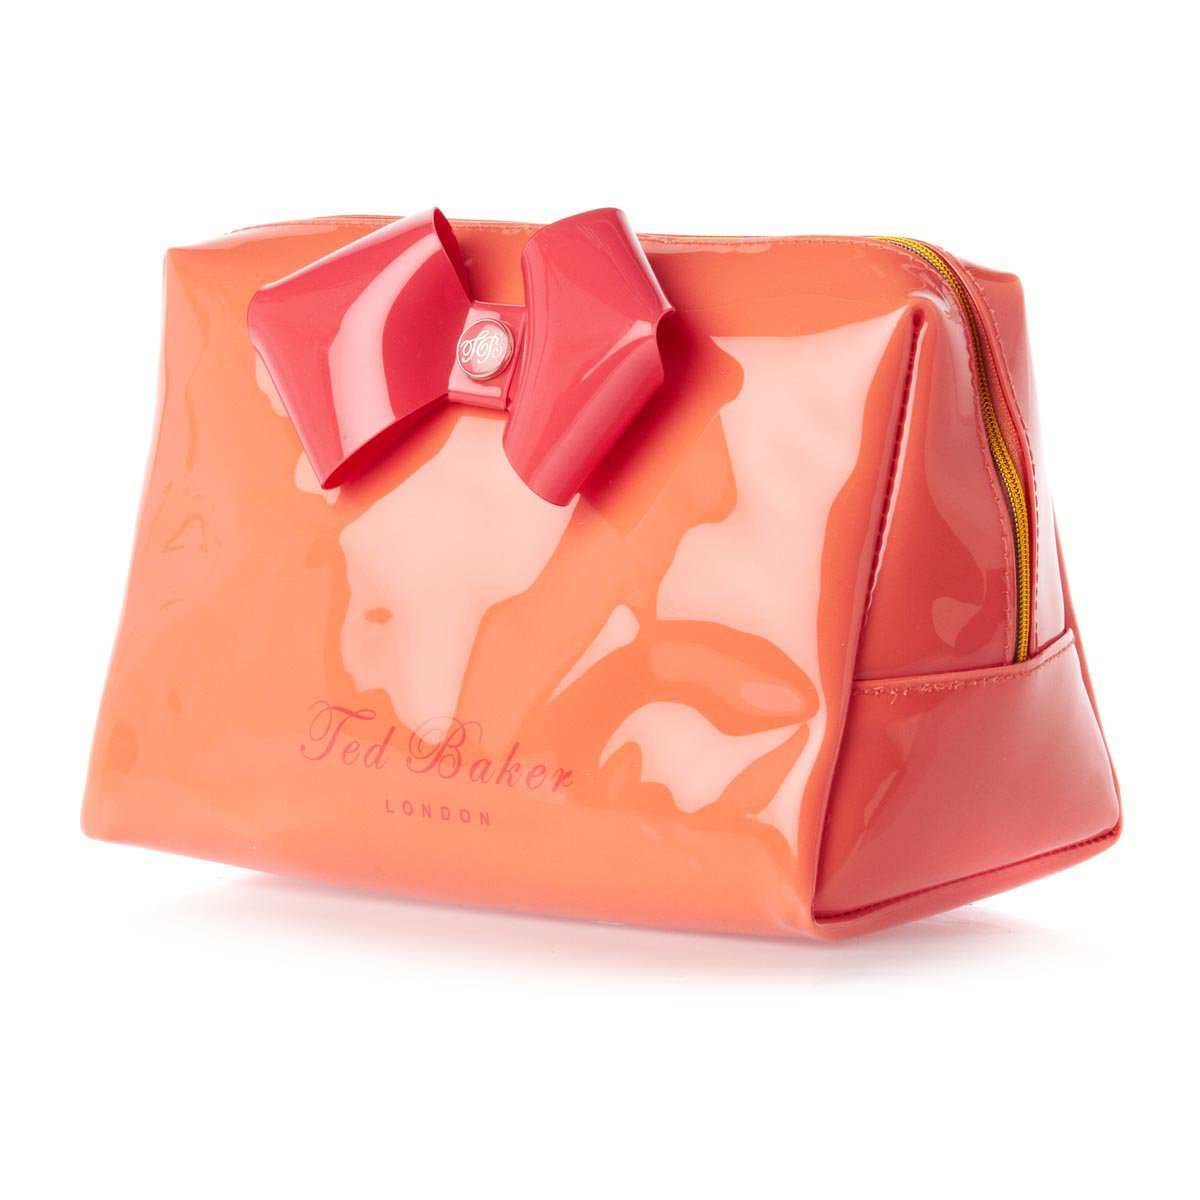 Ted Baker Tamera Large Bow Wash Bag - Orange